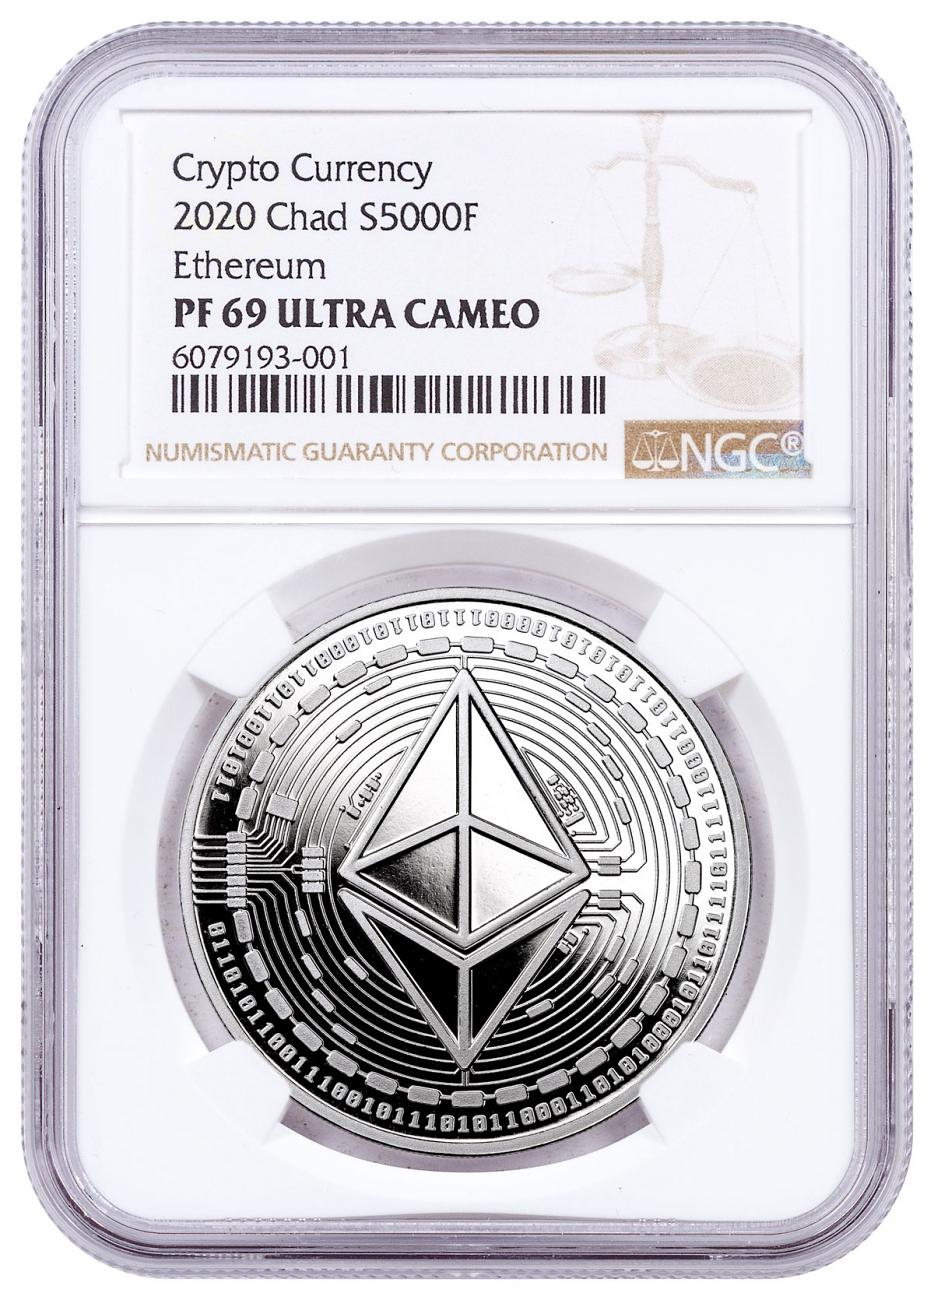 2020 Republic of Chad Fr5,000 1 oz Silver Ethereum Crypto Currency Proof Coin NGC PF69